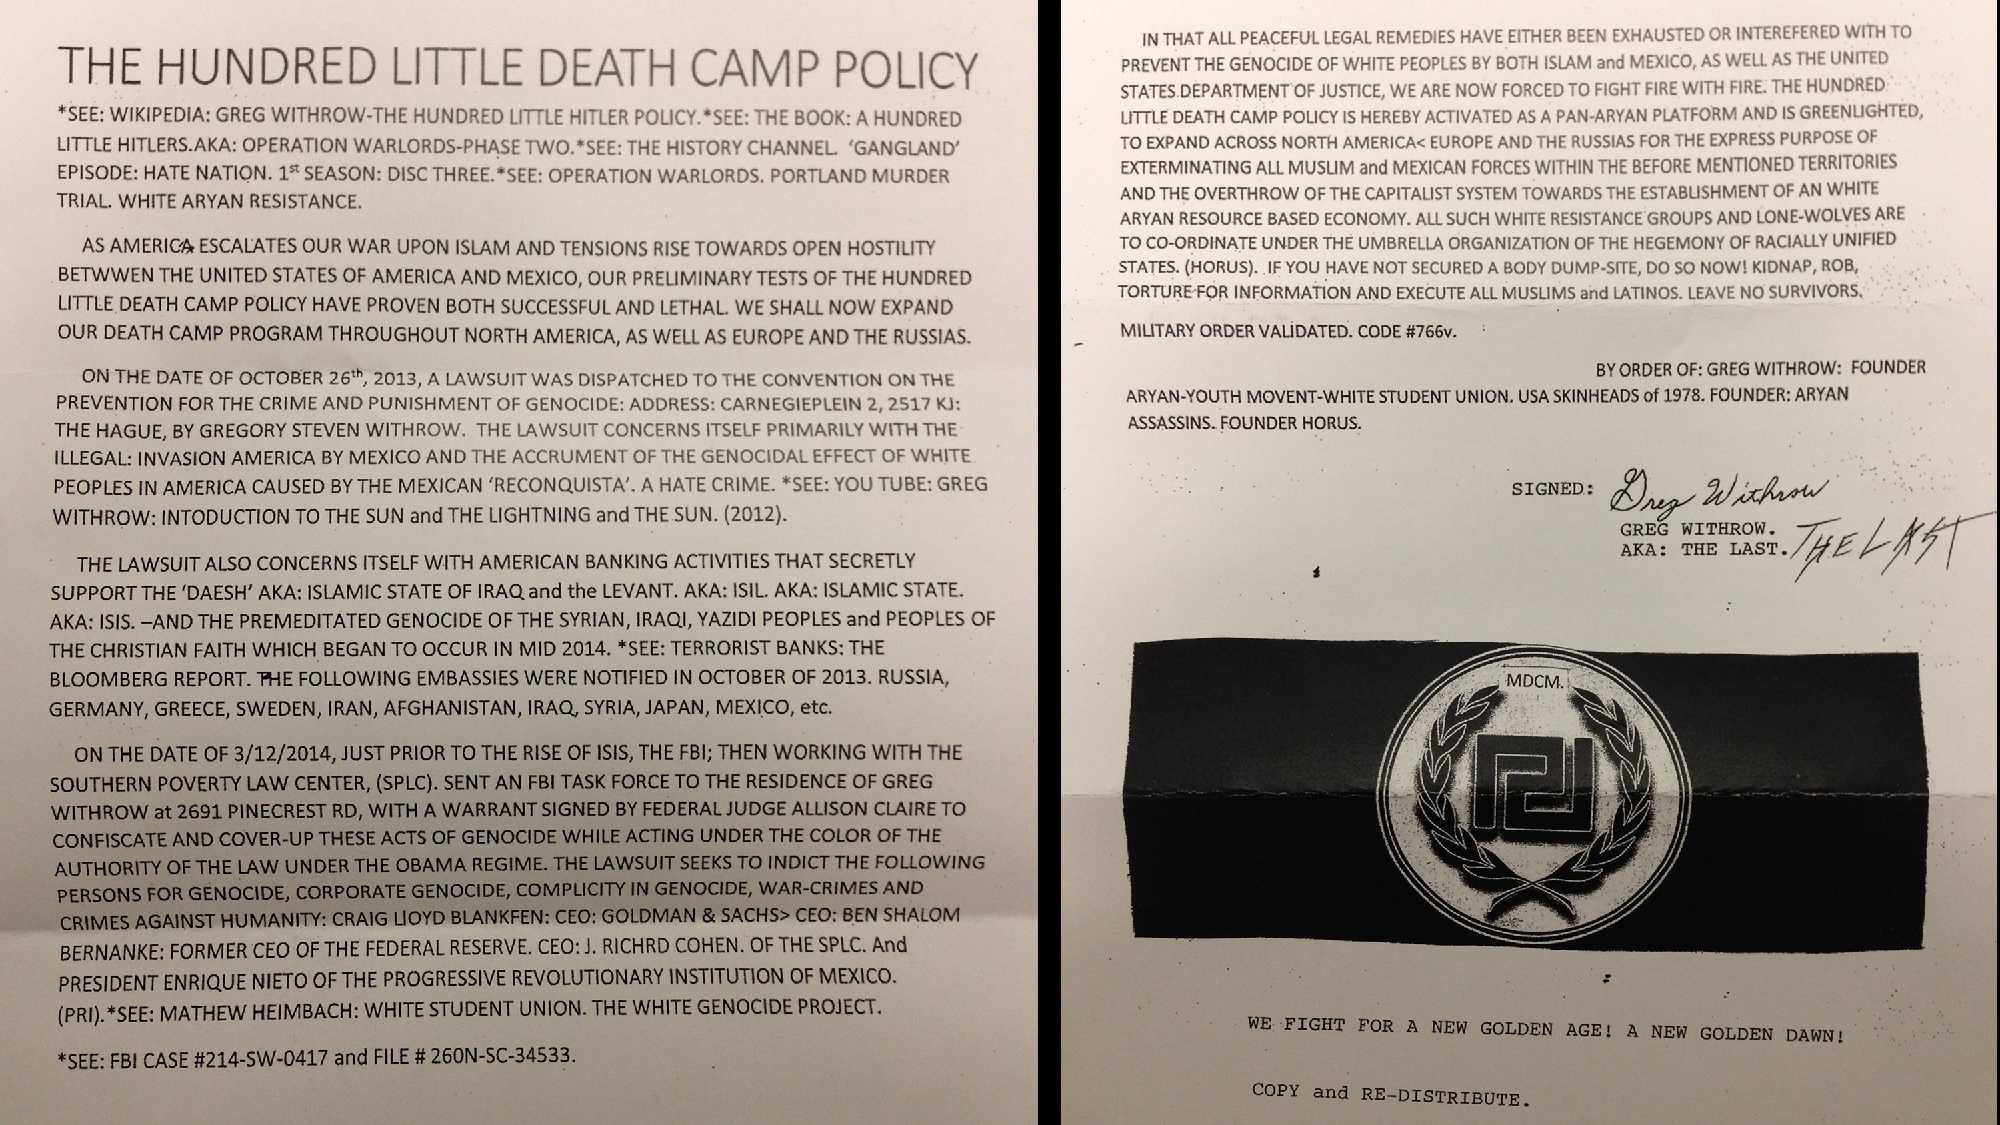 The Sacramento Police Department is investigating the source of fliers propagating a Nazi agenda found on vehicles Tuesday in midtown.